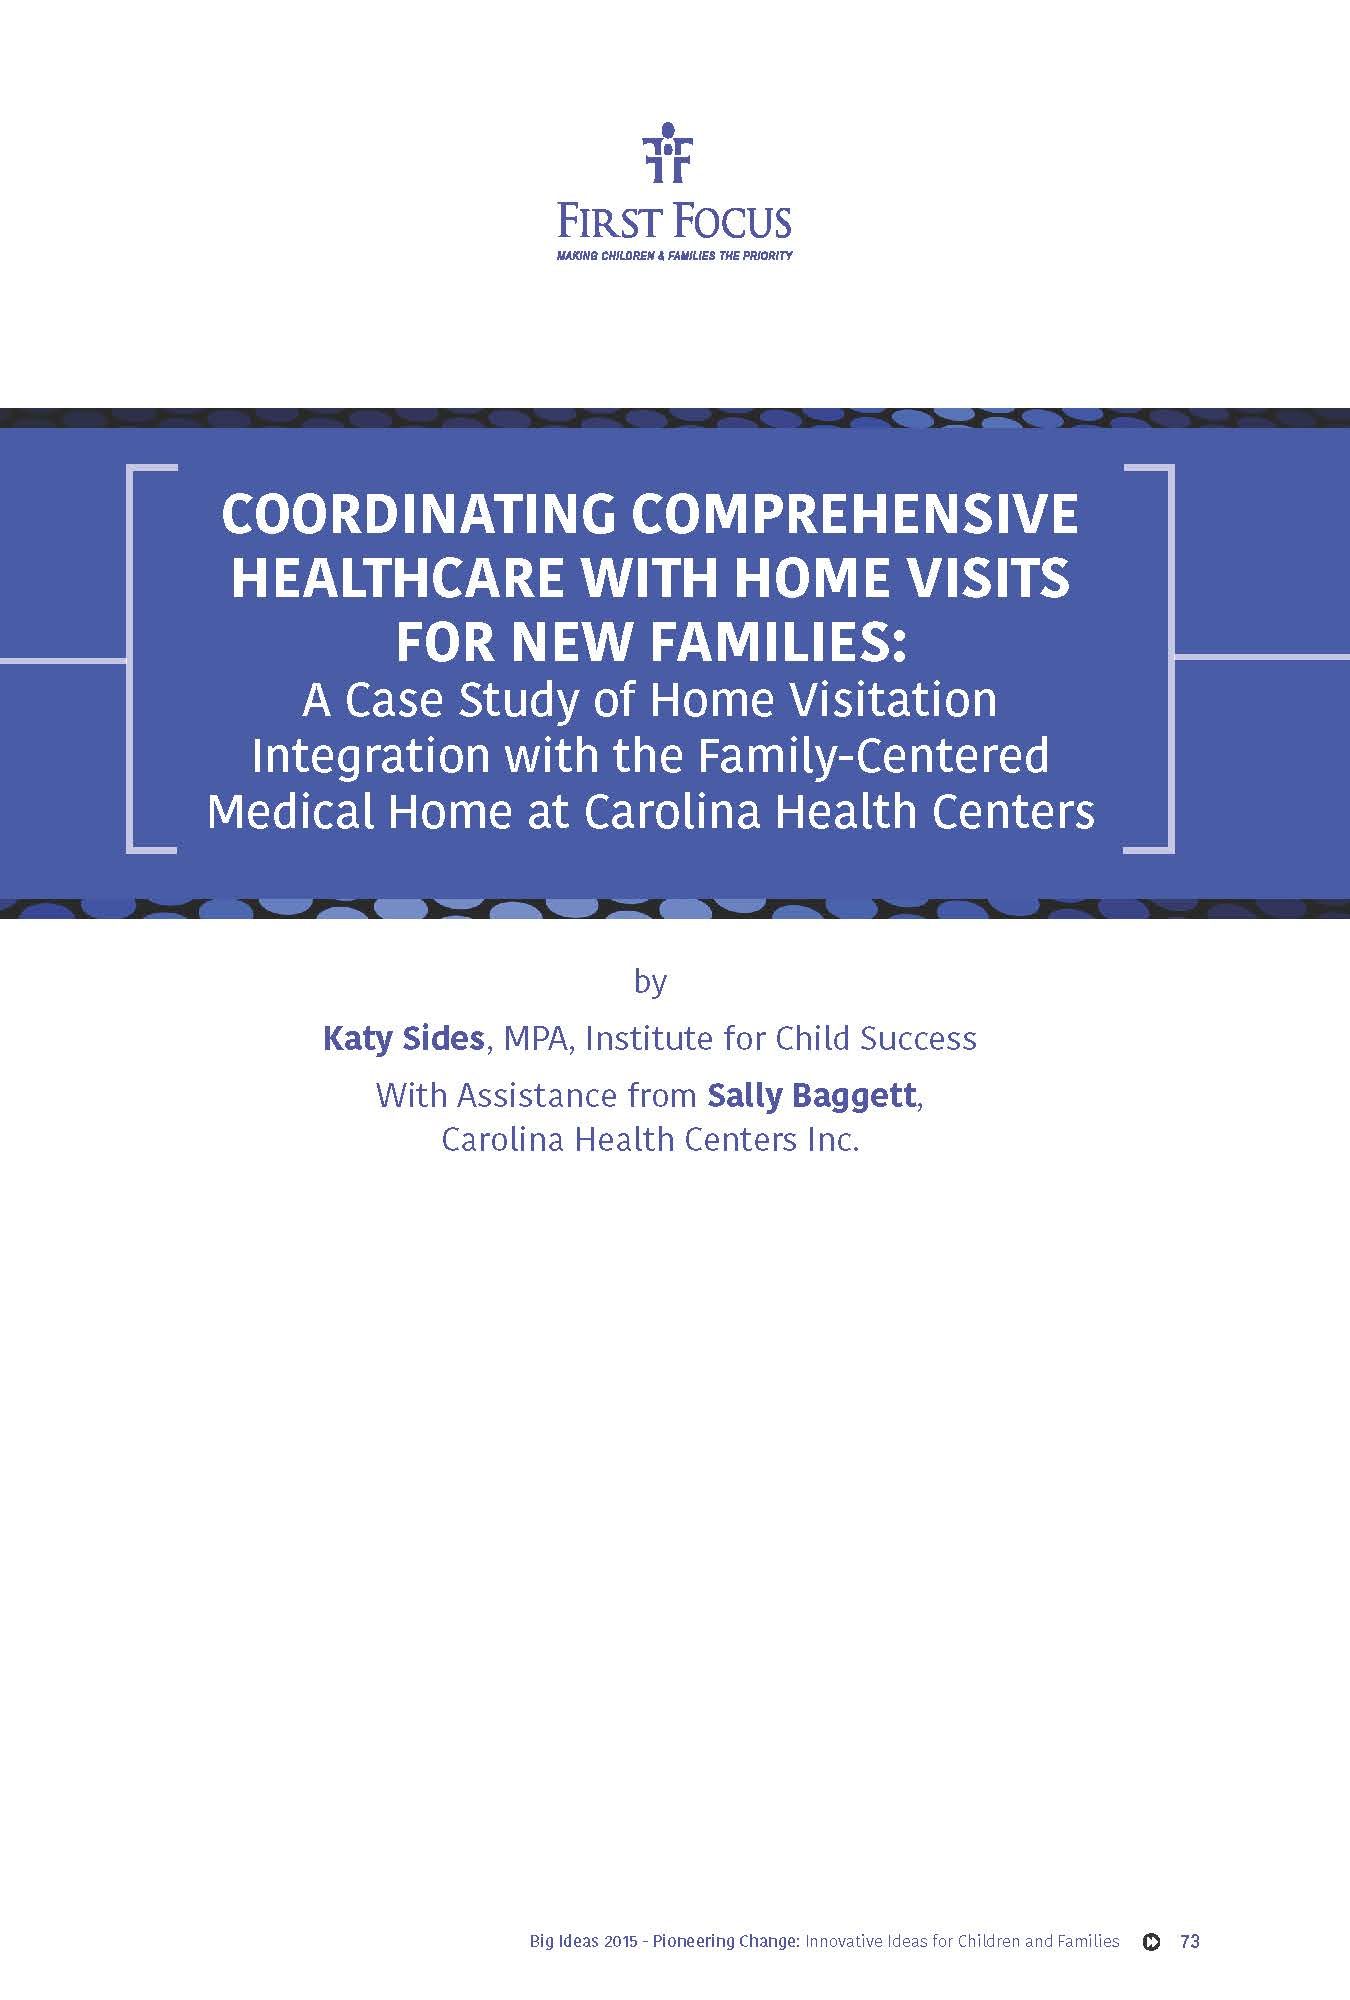 Coordinating Comprehensive Healthcare with Home Visits for New Families: A Case Study of Home Visitation Integration with the Family-Centered Medical Home at Carolina Health Centers